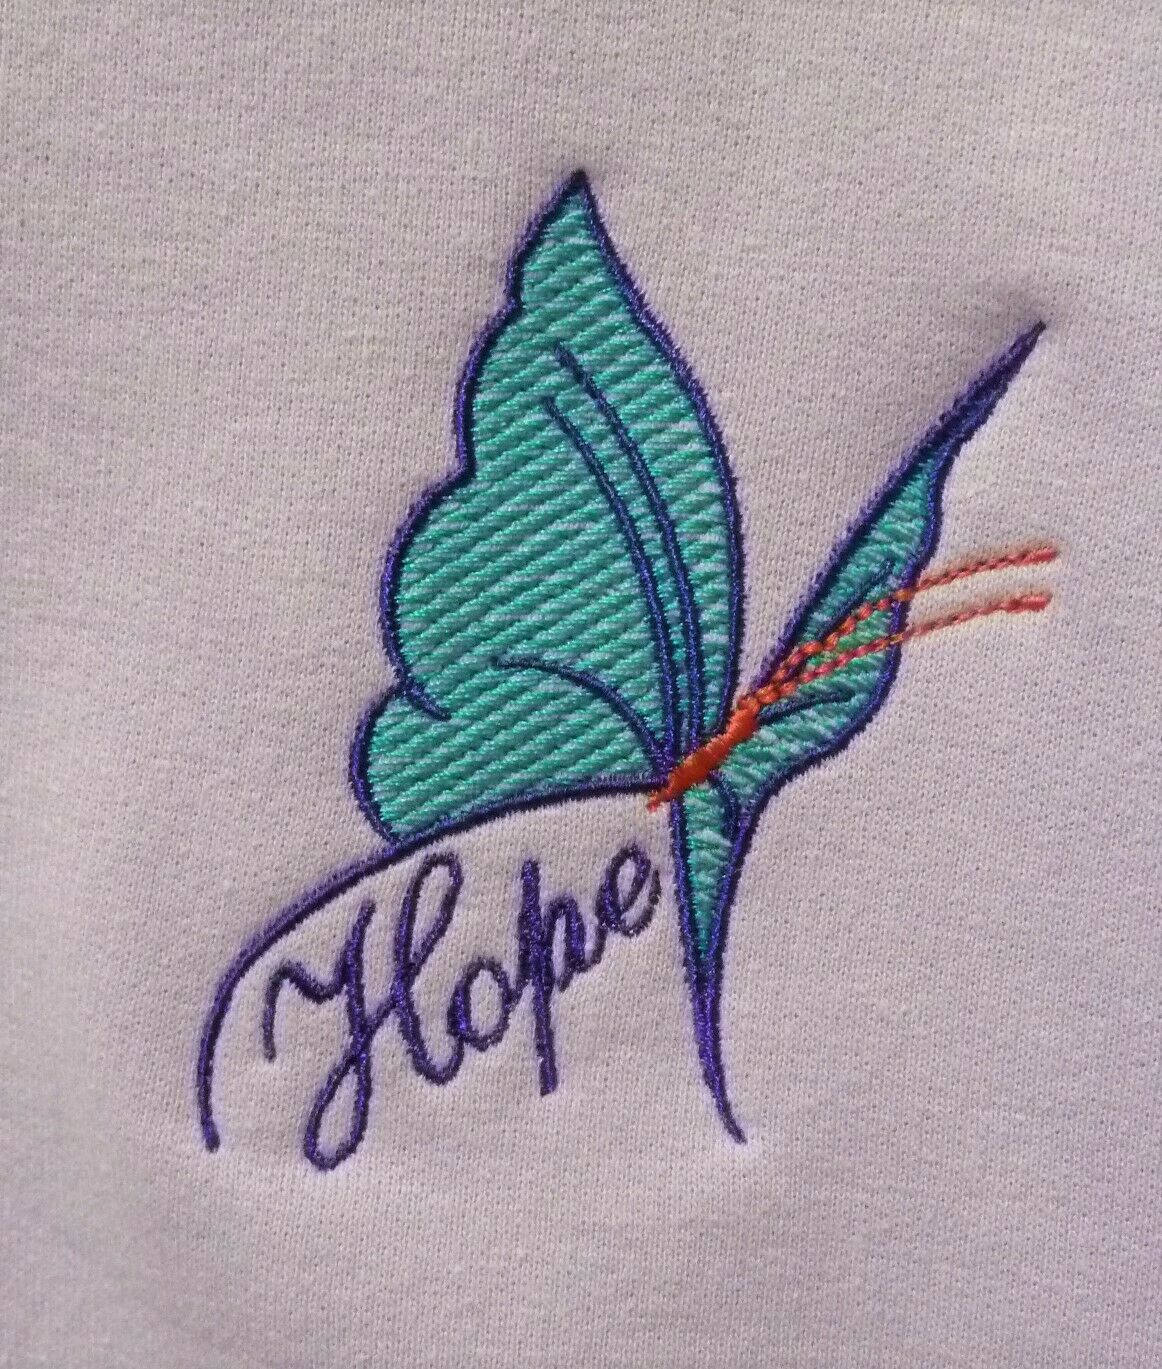 Primary image for Purple/Turquoise Butterfly HOPE Crew 5X Orchid Sweatshirt Cancer Aware Unisex Nw